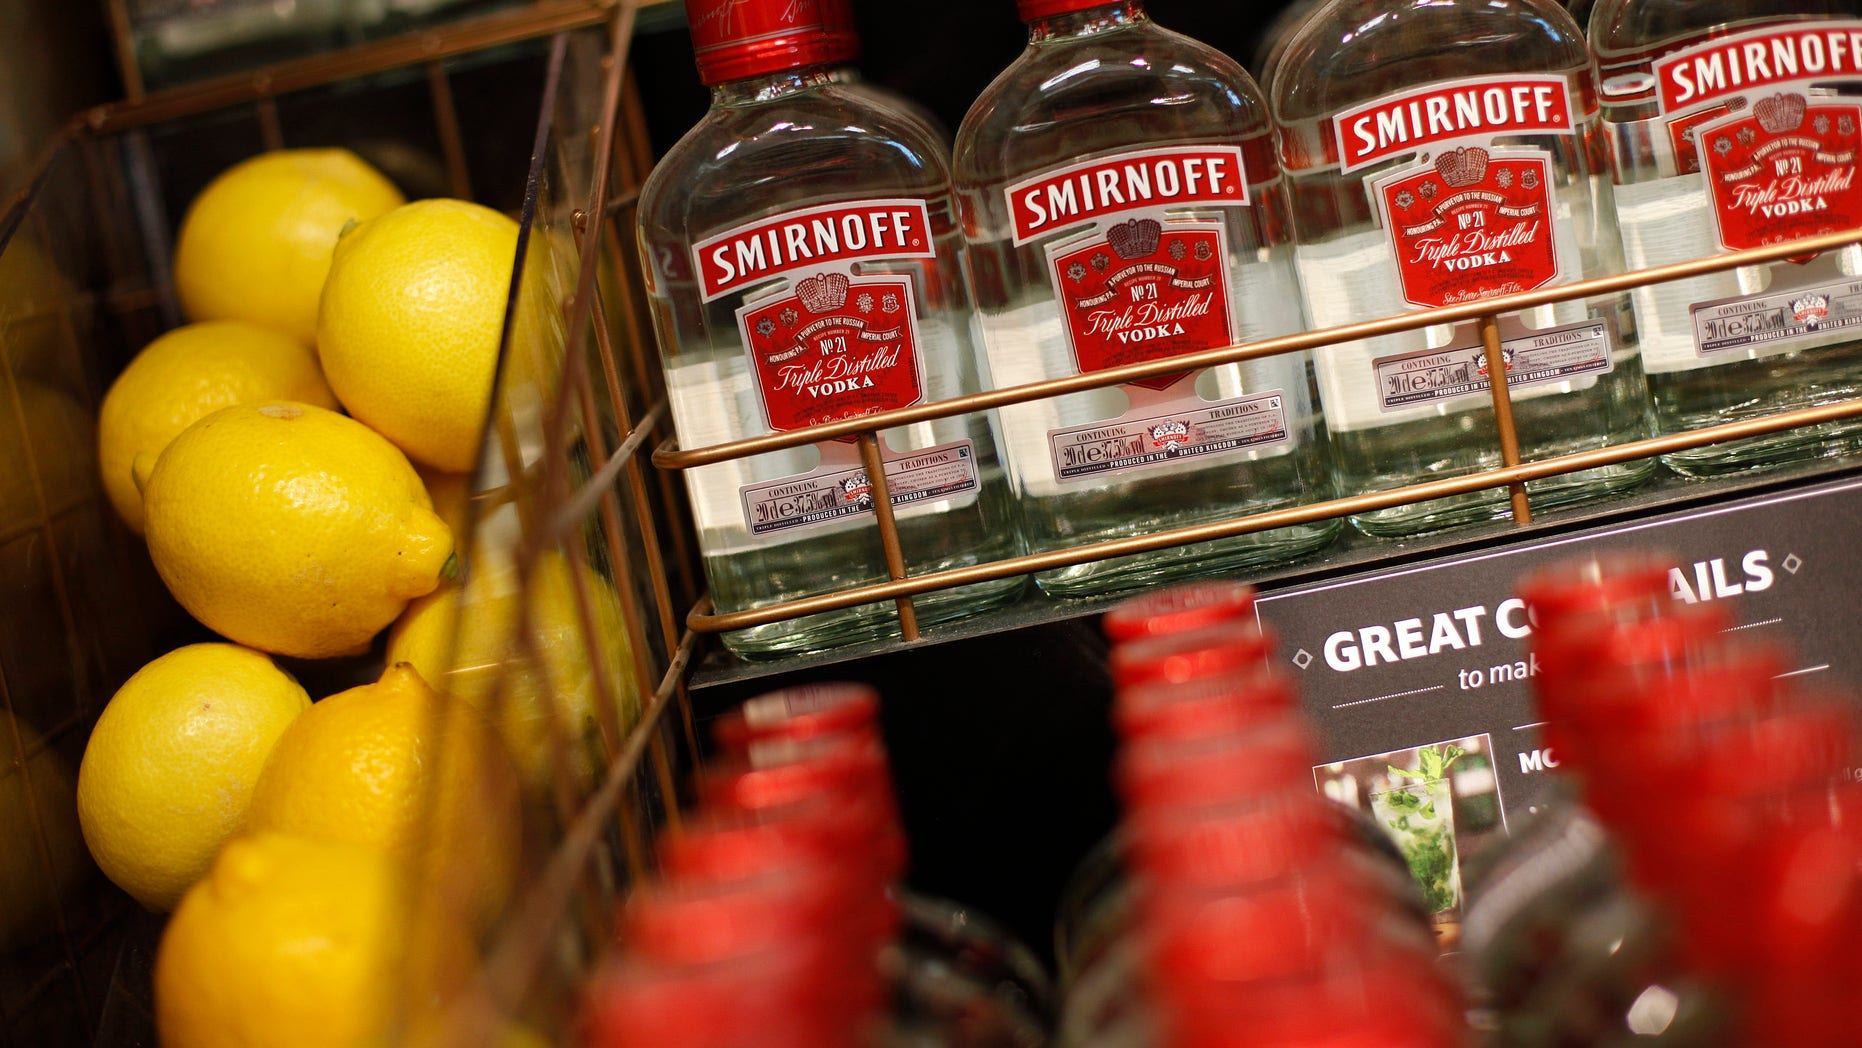 Smirnoff vodka and lemons are displayed in the liquor aisle at a Tesco Extra supermarket in Watford, north of London.